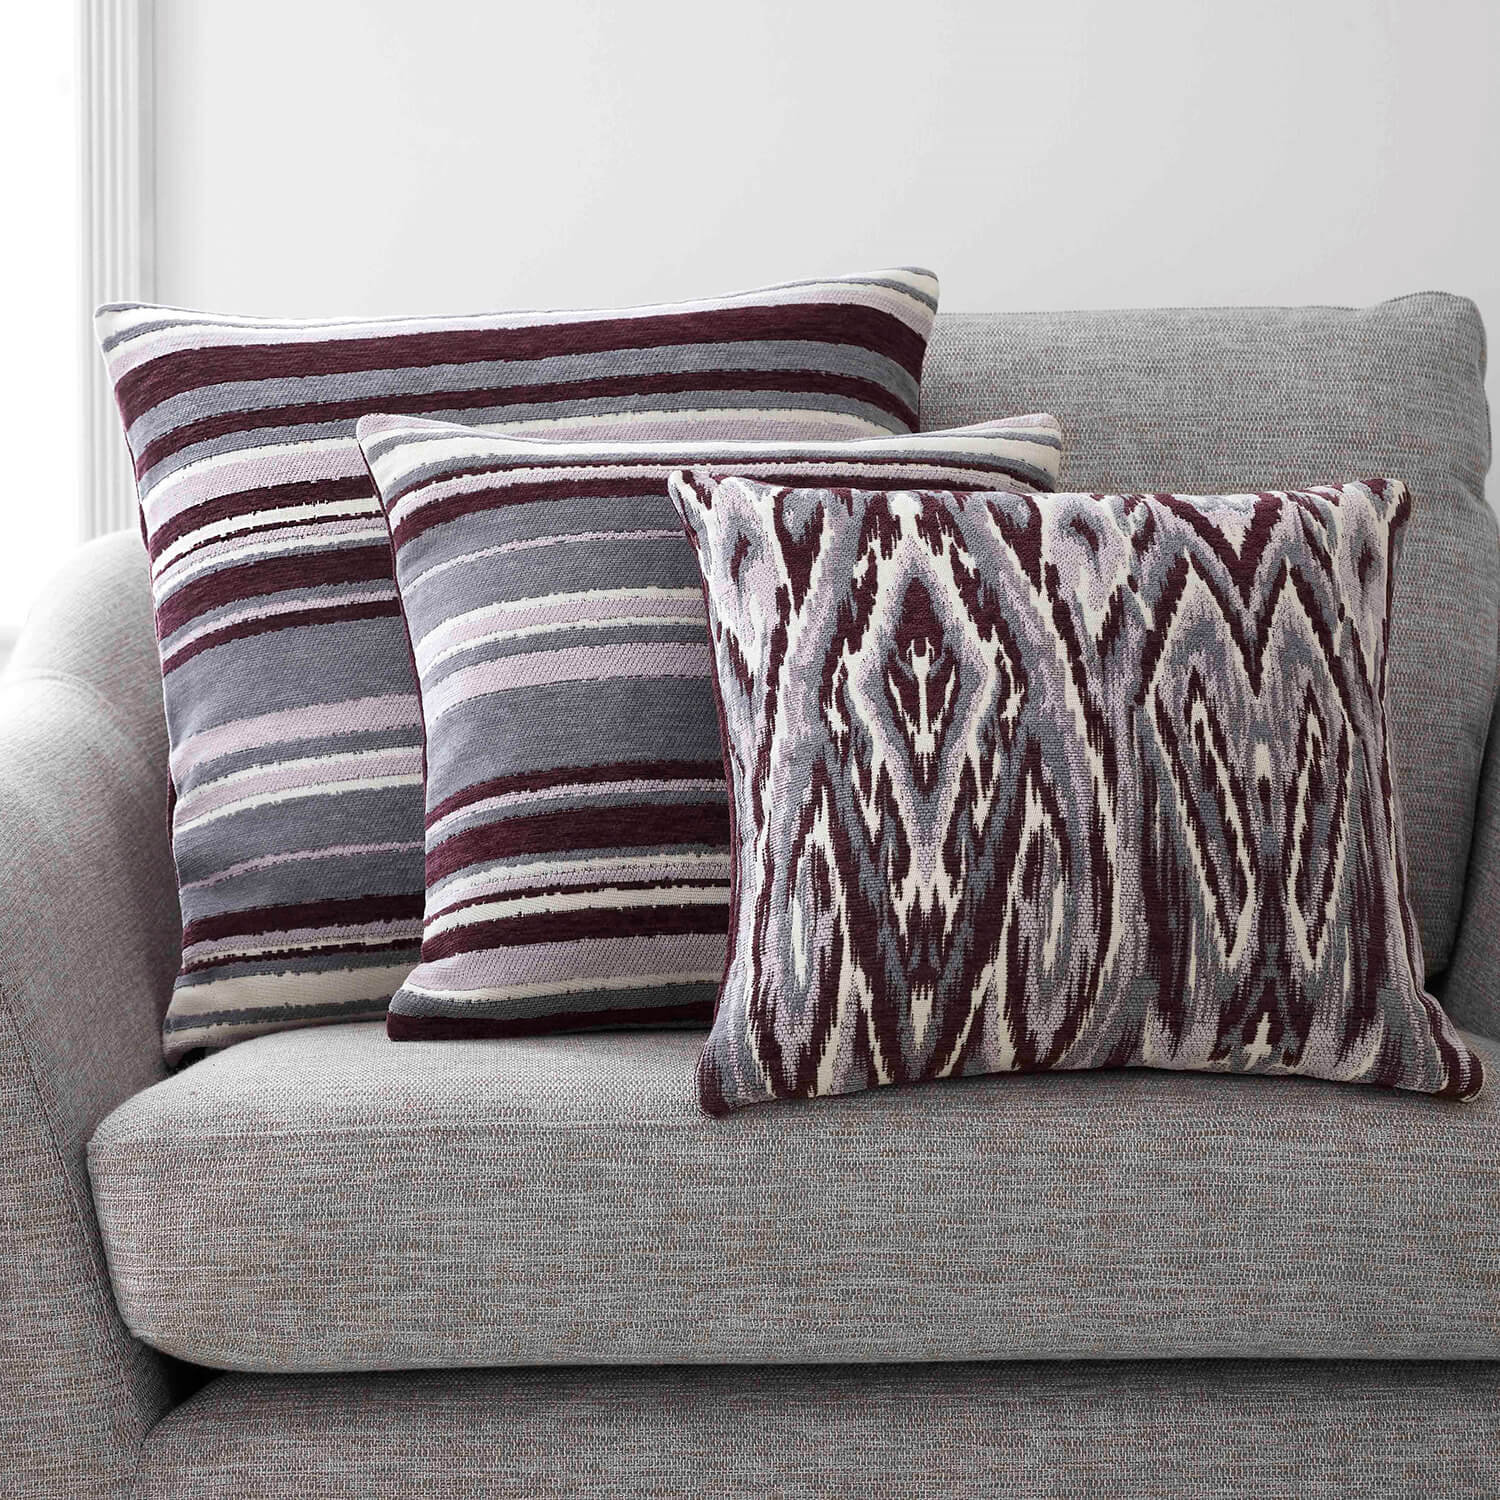 Rhea Cushion 45 x 45cm - Plum